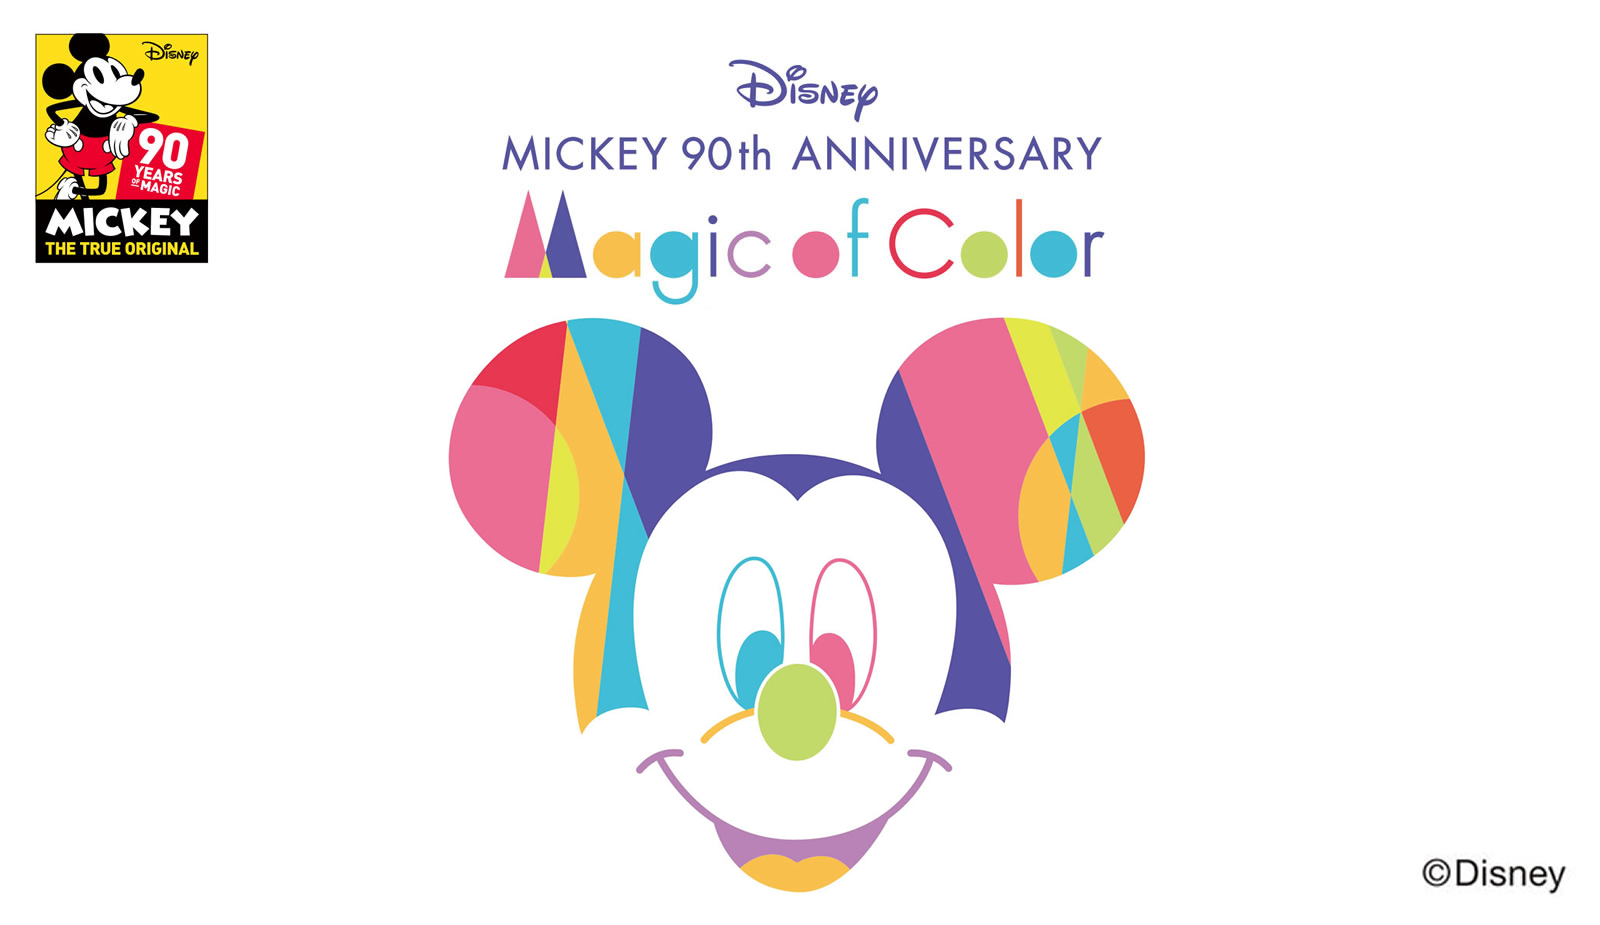 Disney MICKEY 90th ANNIVERSARY